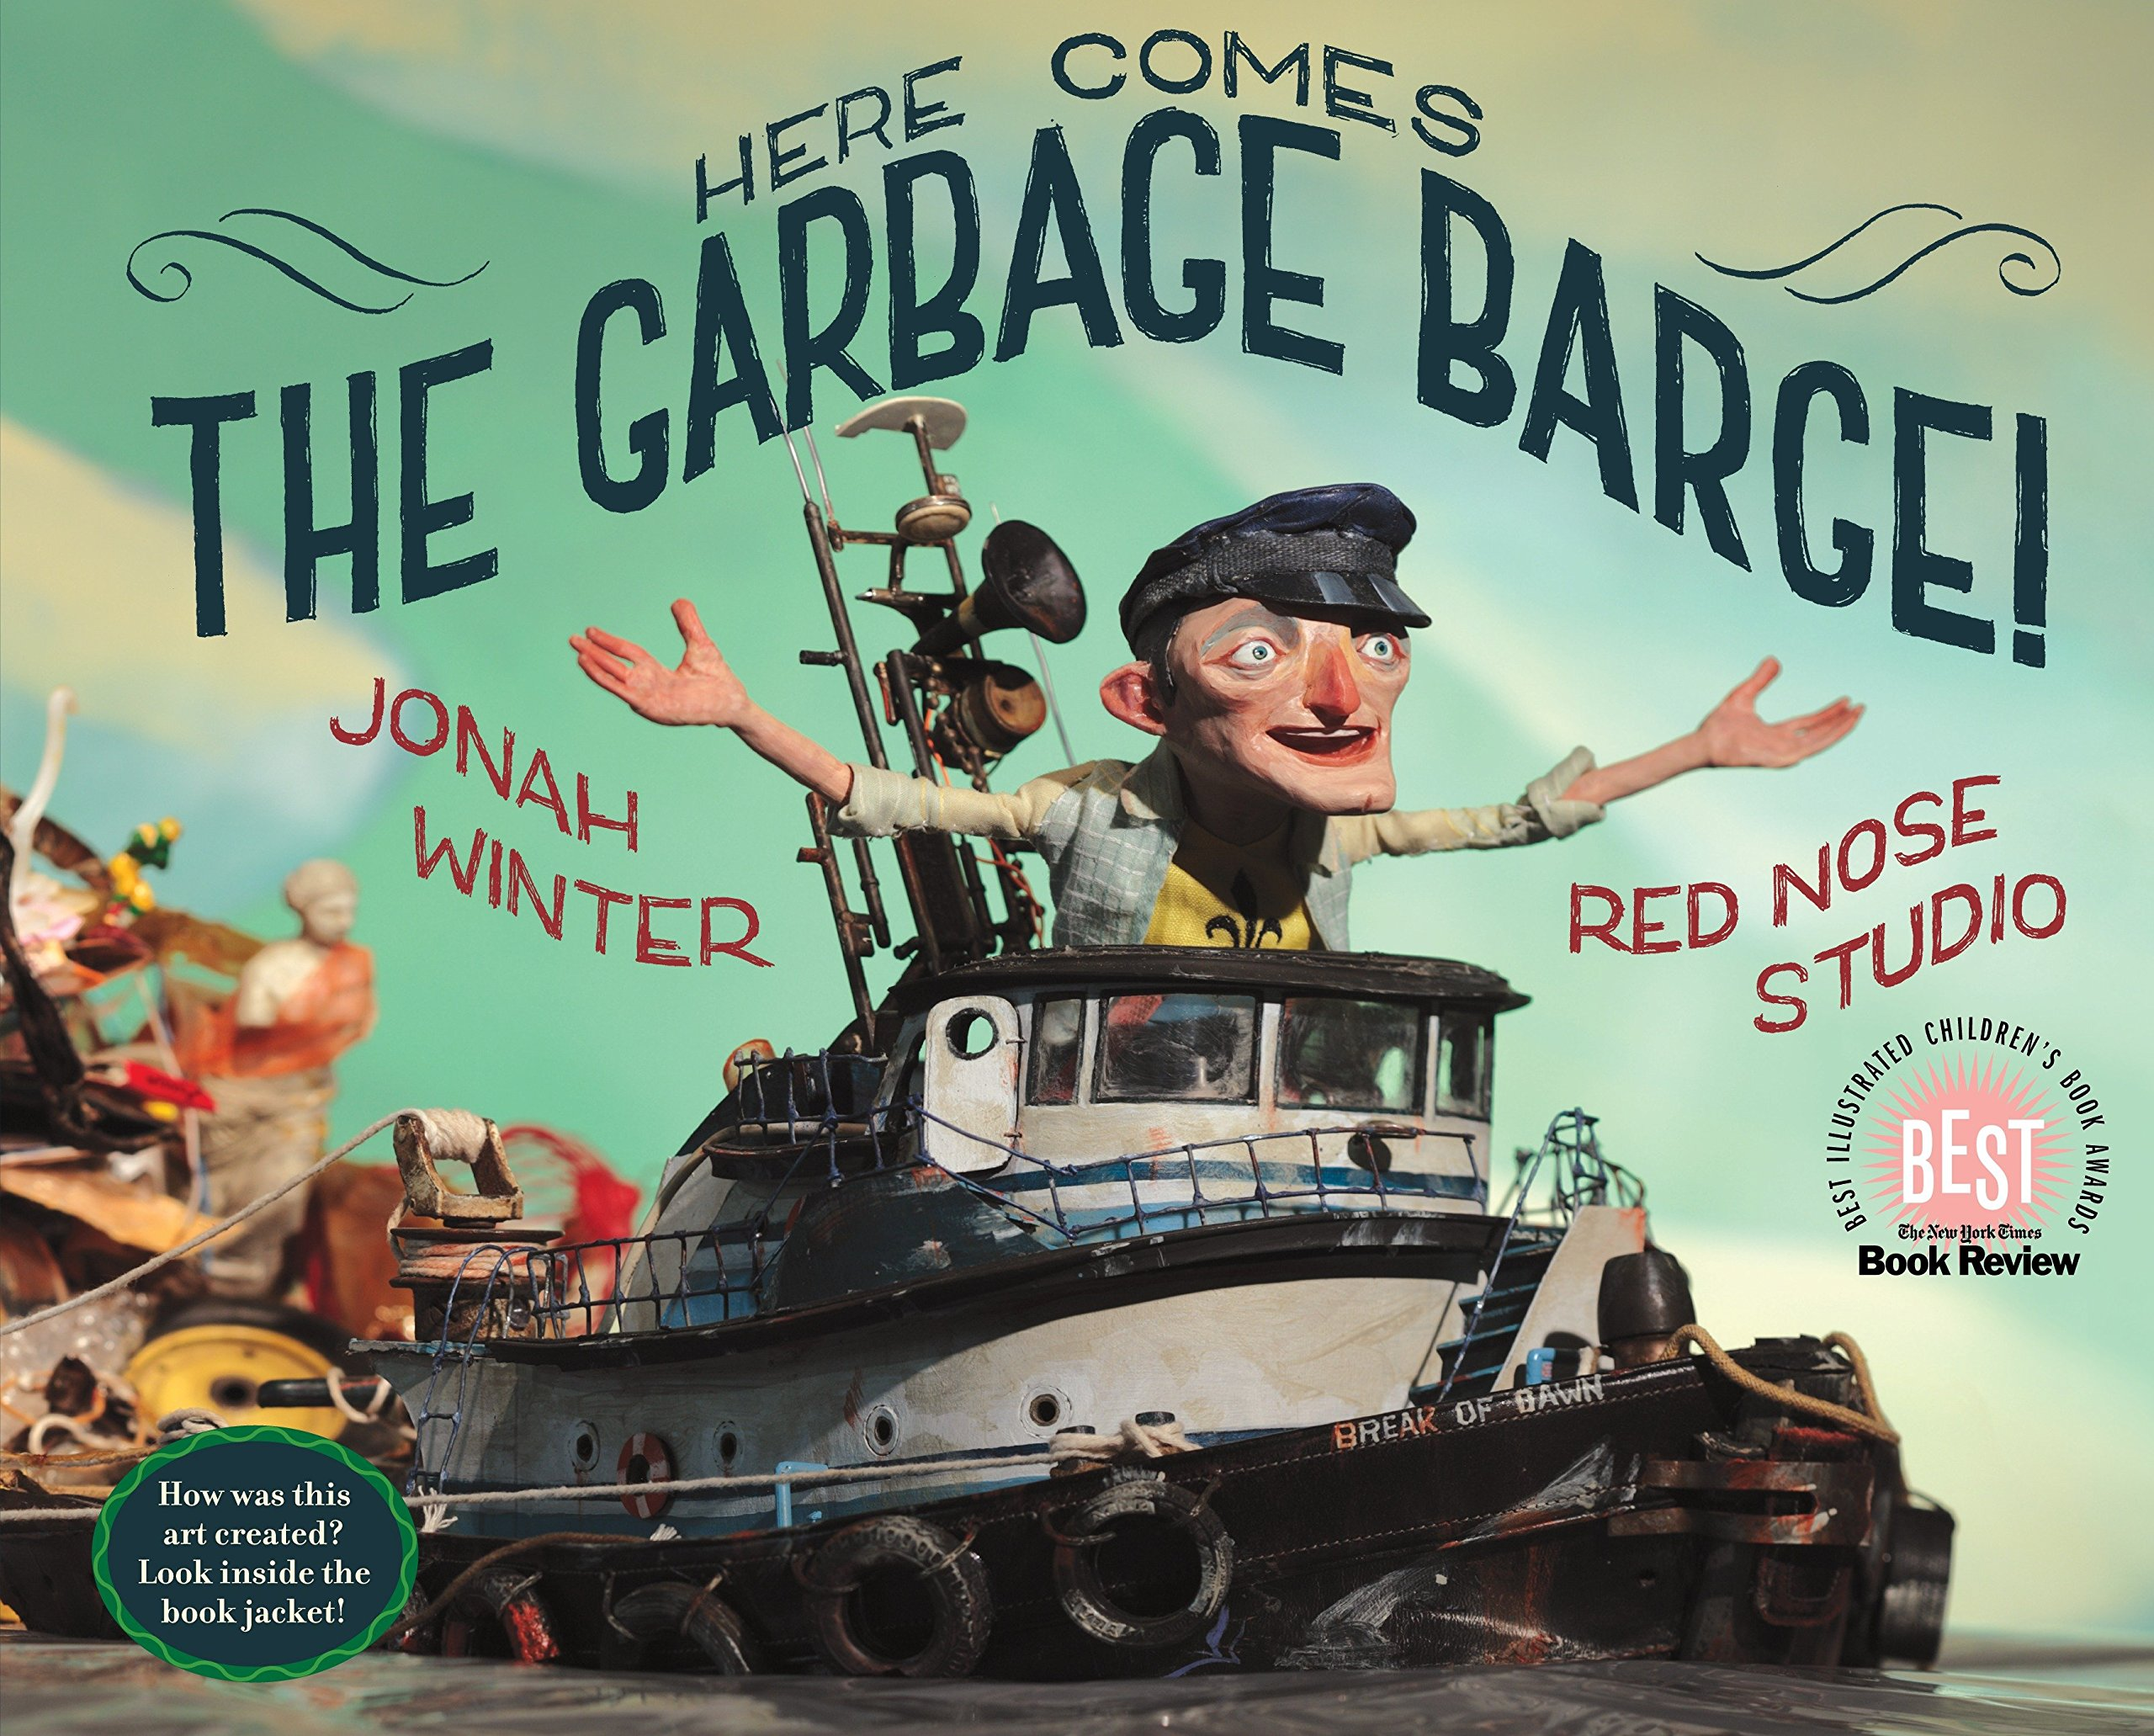 Here Comes The Garbage Barge!: Amazon co uk: Jonah Winter: Books